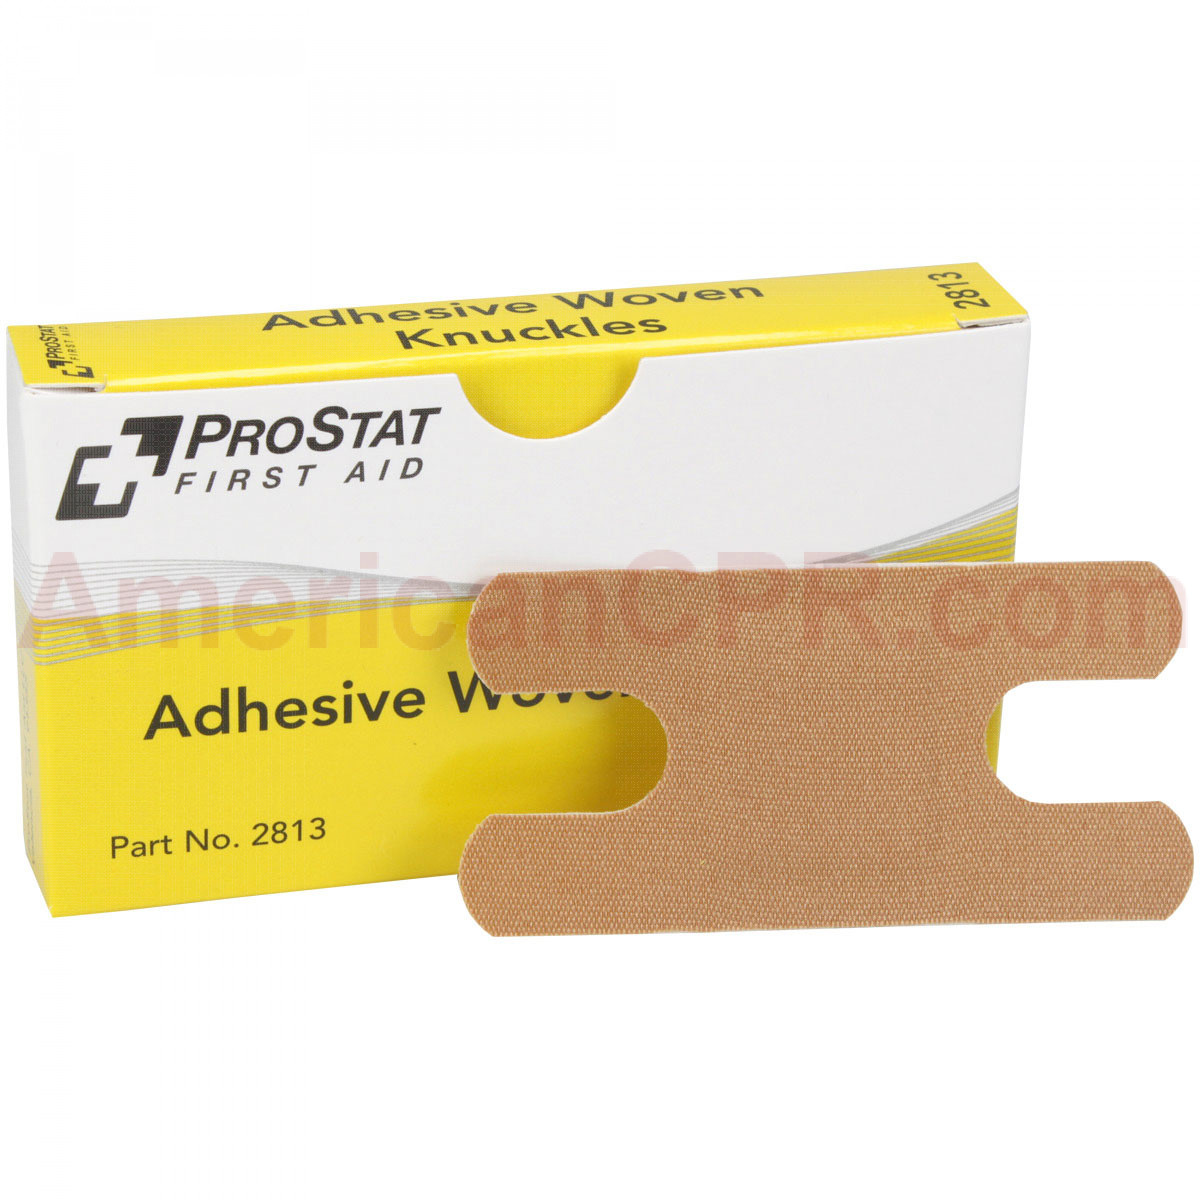 Knuckle Adhesive Bandages, Woven, 8 per box, Prostat First Aid